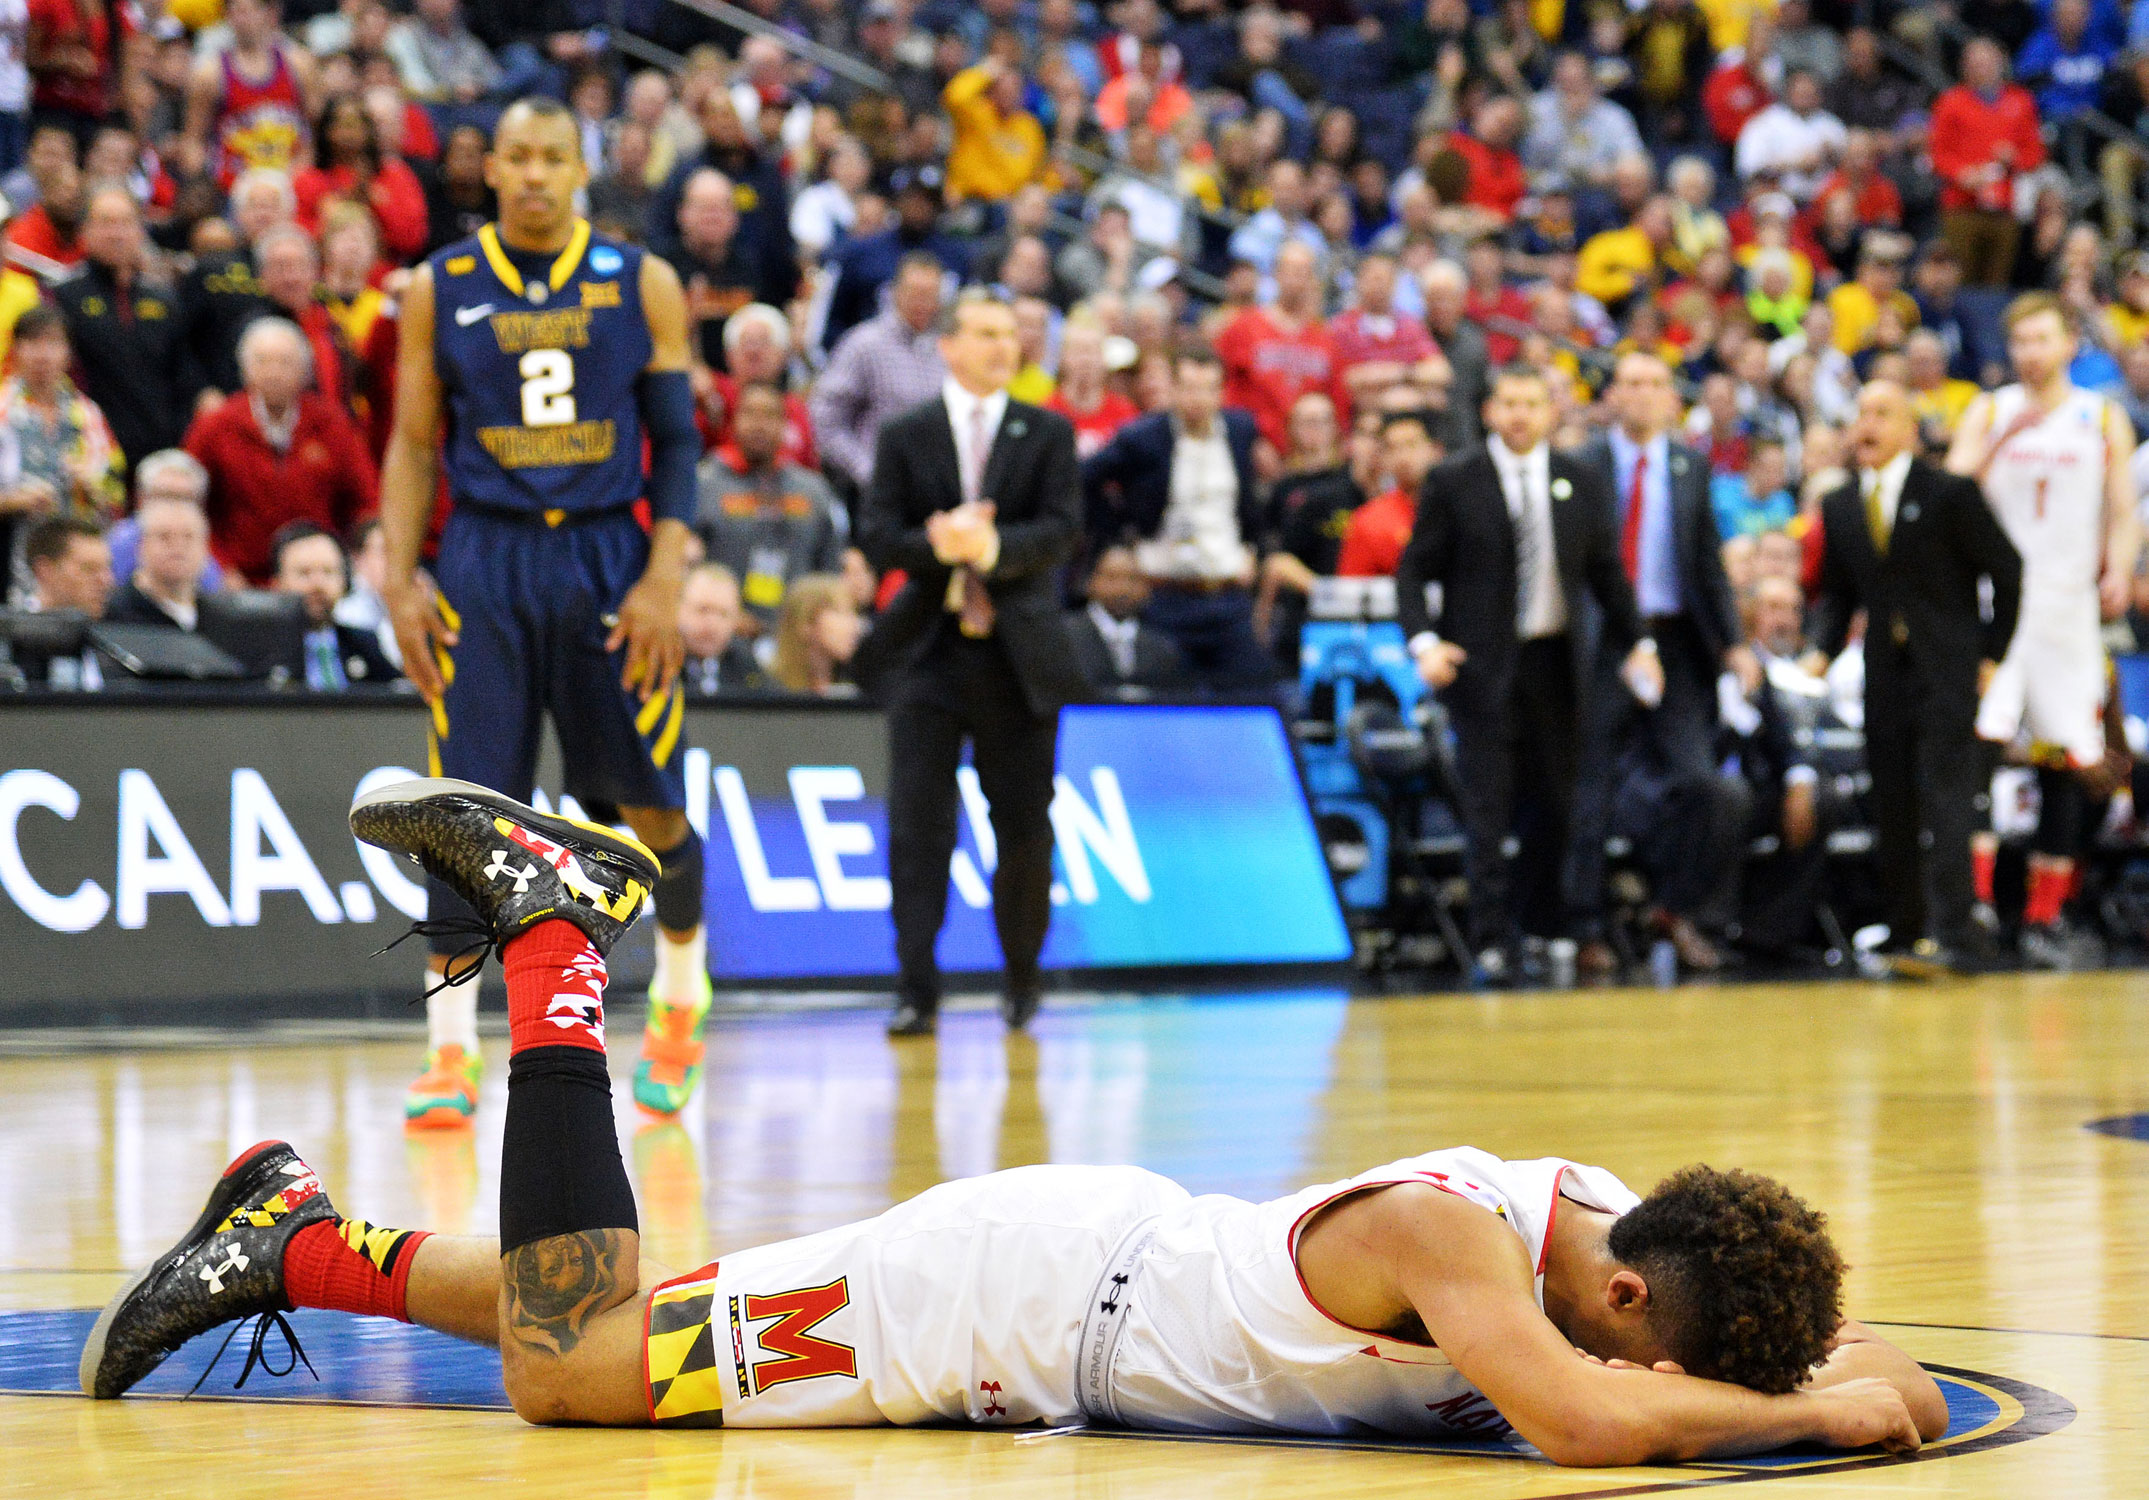 Melo Trimble, concussions and the future of athlete safety